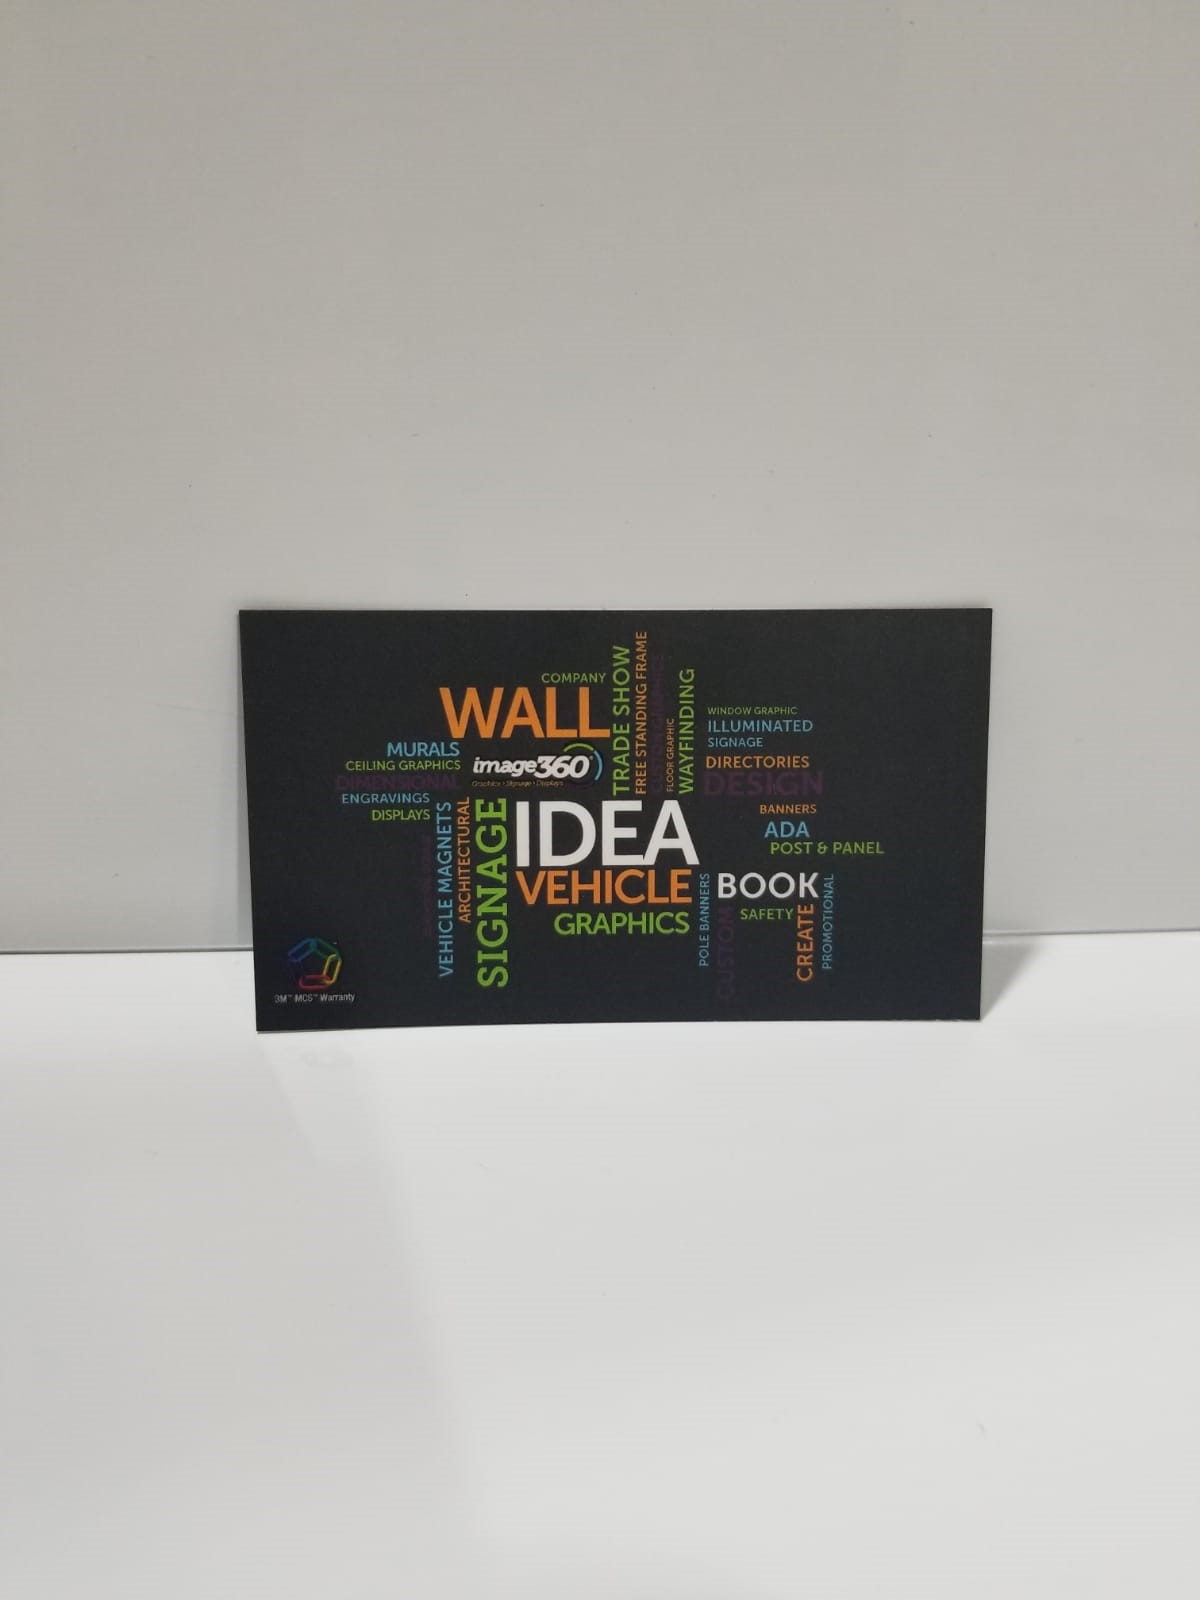 Business Cards | Business Presentation Materials | Advertising Agencies | Orlando , FL | Kissimmee | Signage | WallGraphics | Spot UV Business Cards